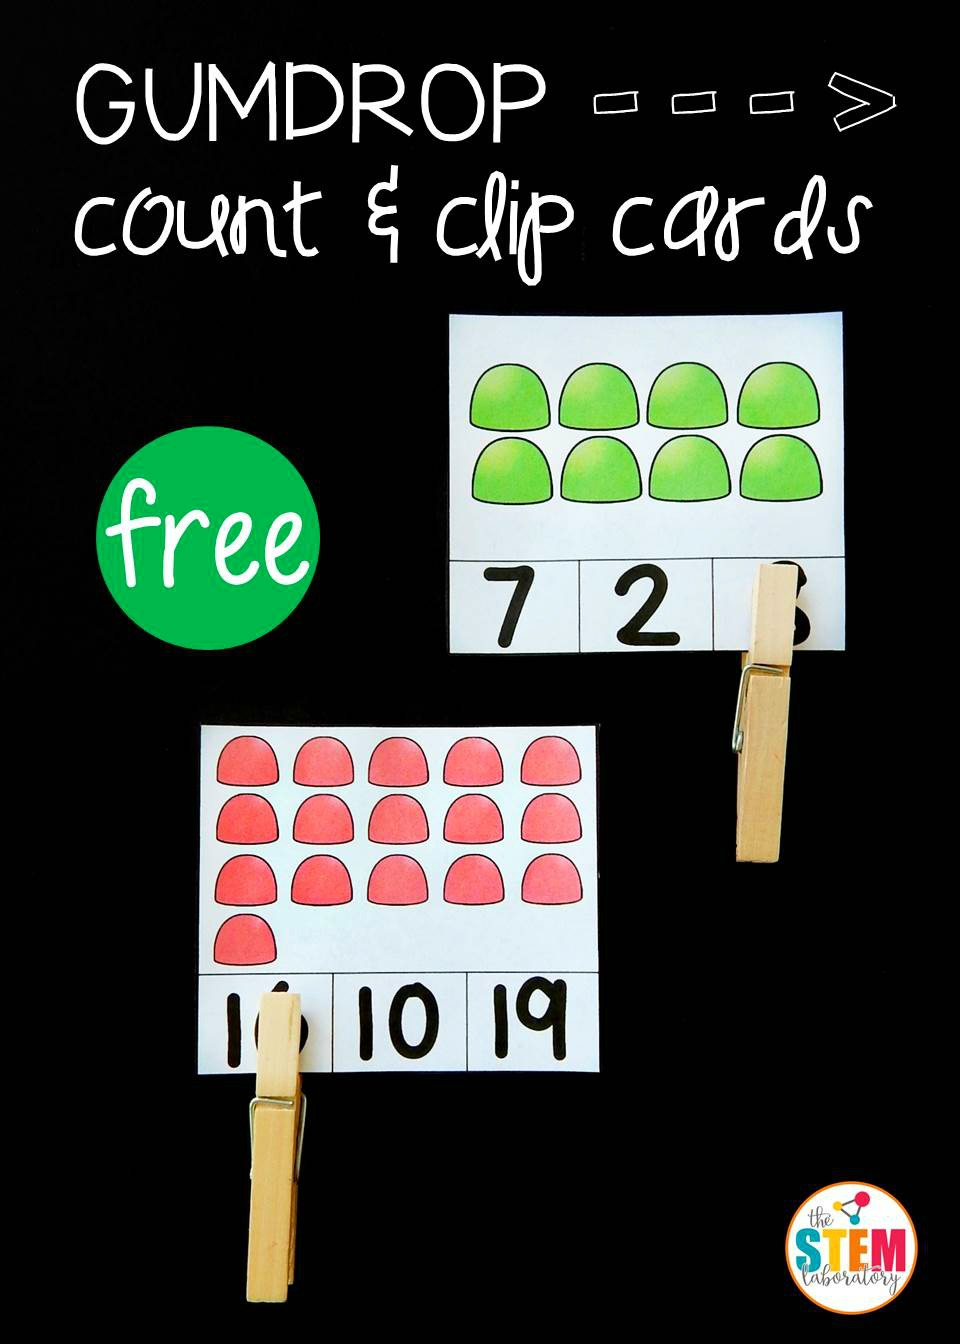 Gumdrop Count and Clip Cards